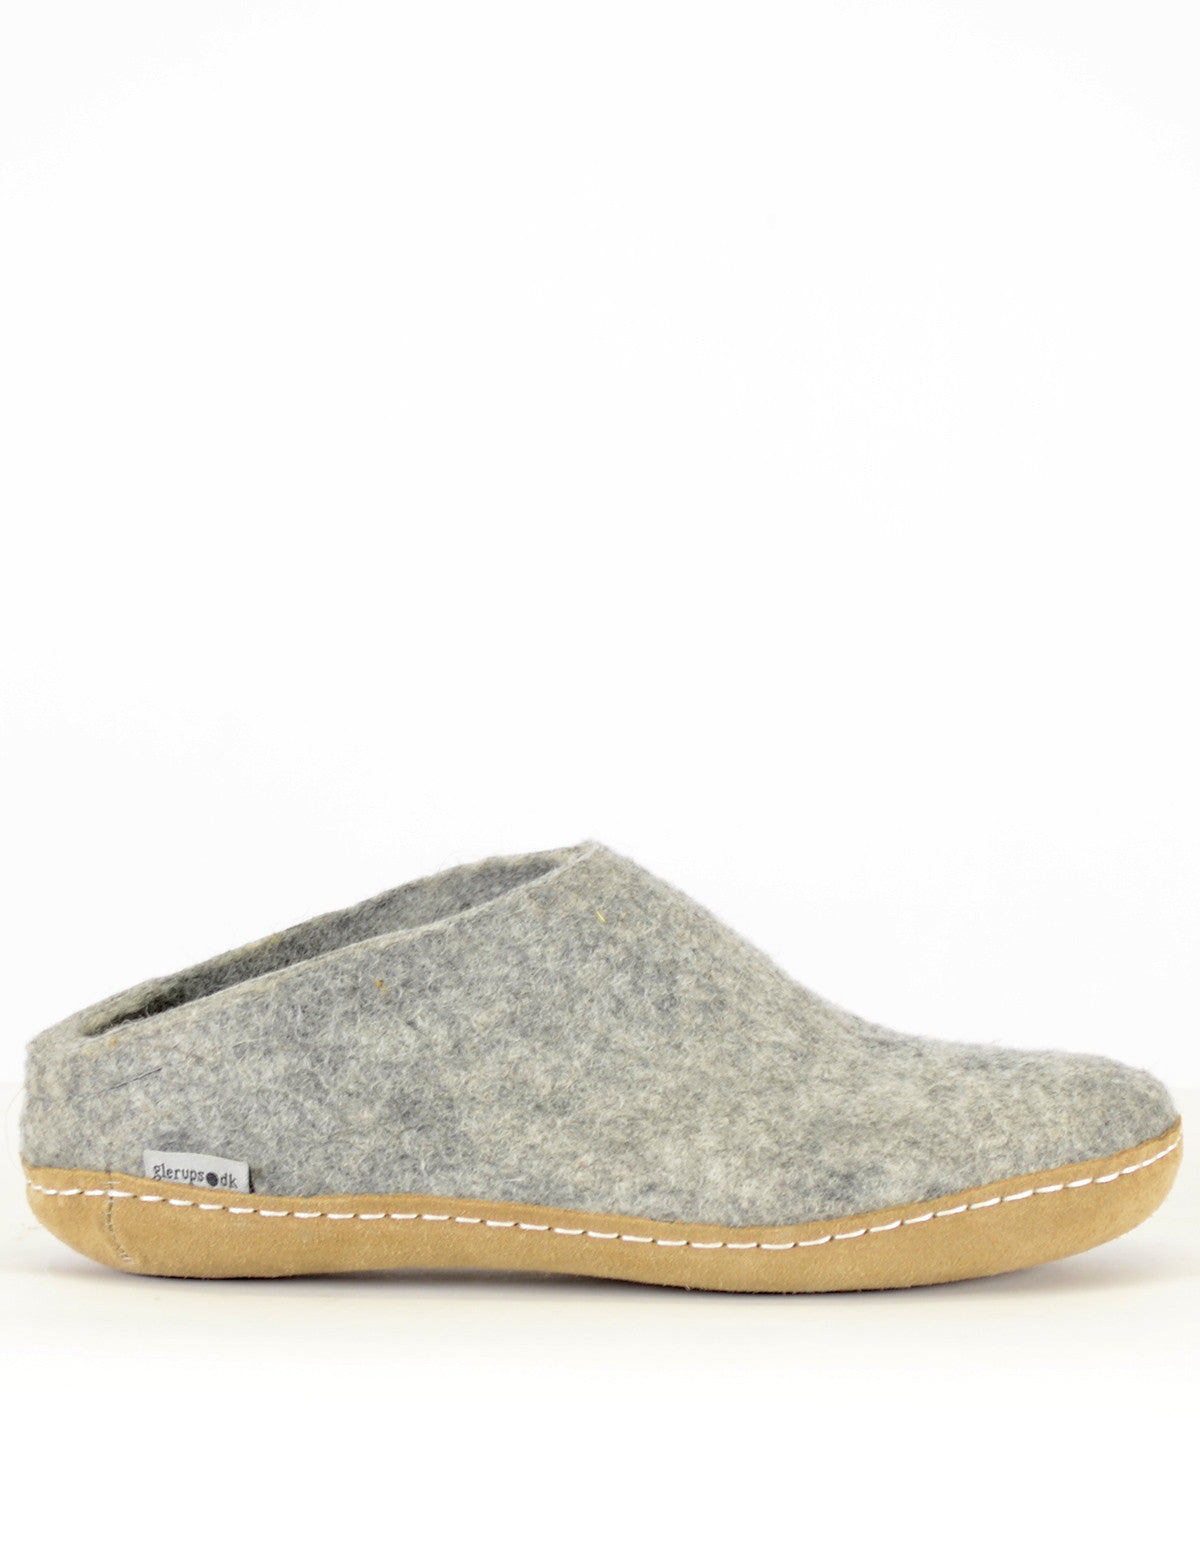 Glerups Women's Wool Slipper Leather Sole Grey - Still Life - 1